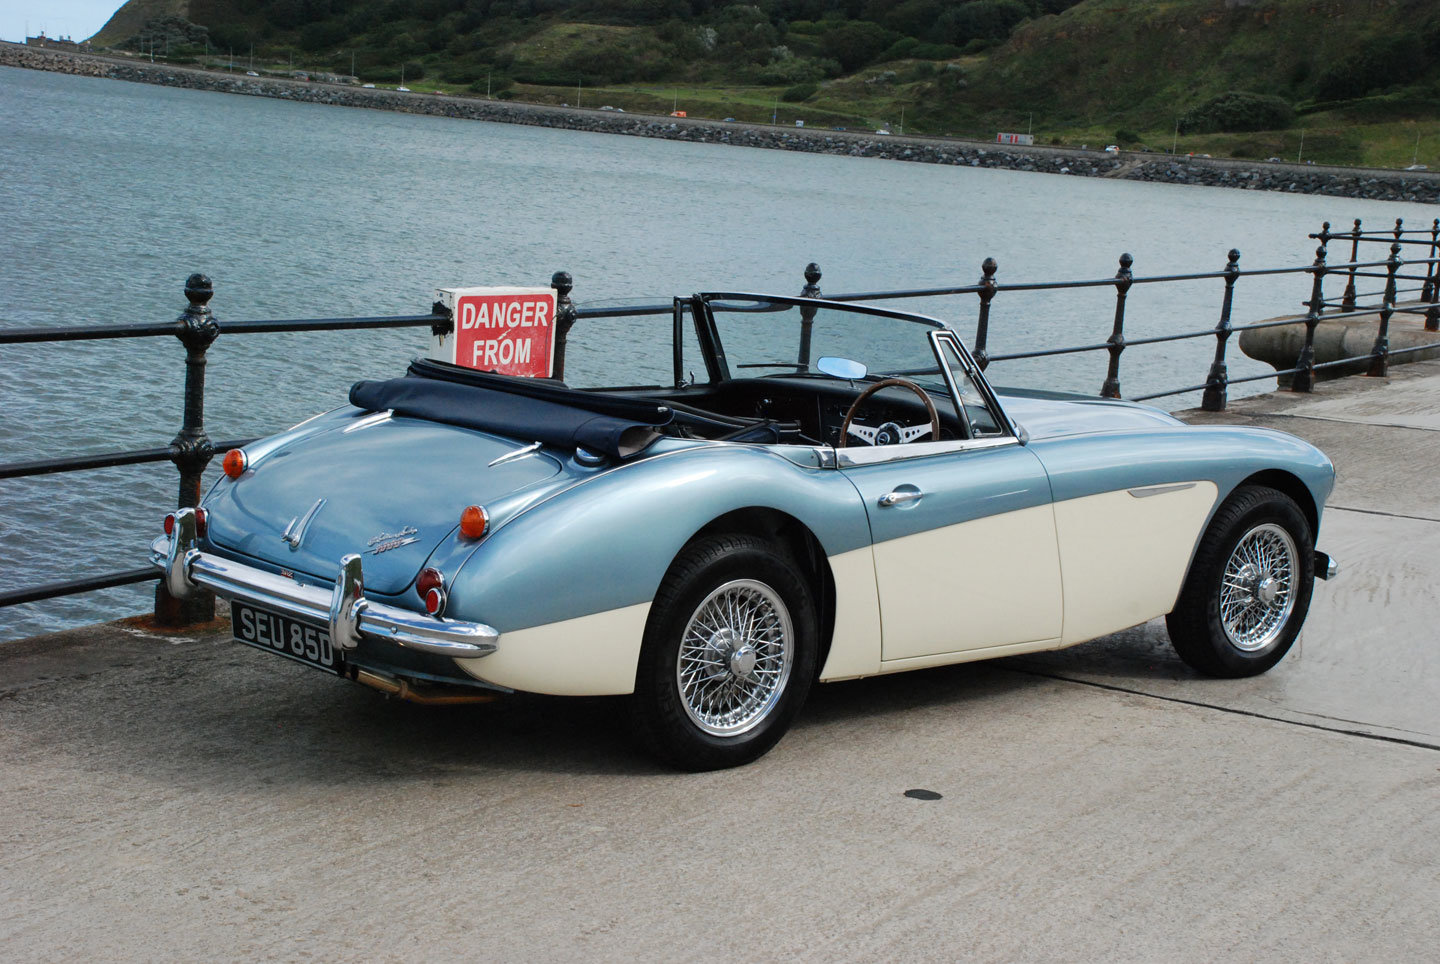 1966 Austin Healey 3000 MK 3 BJ8 phase 2 For Sale (picture 4 of 10)